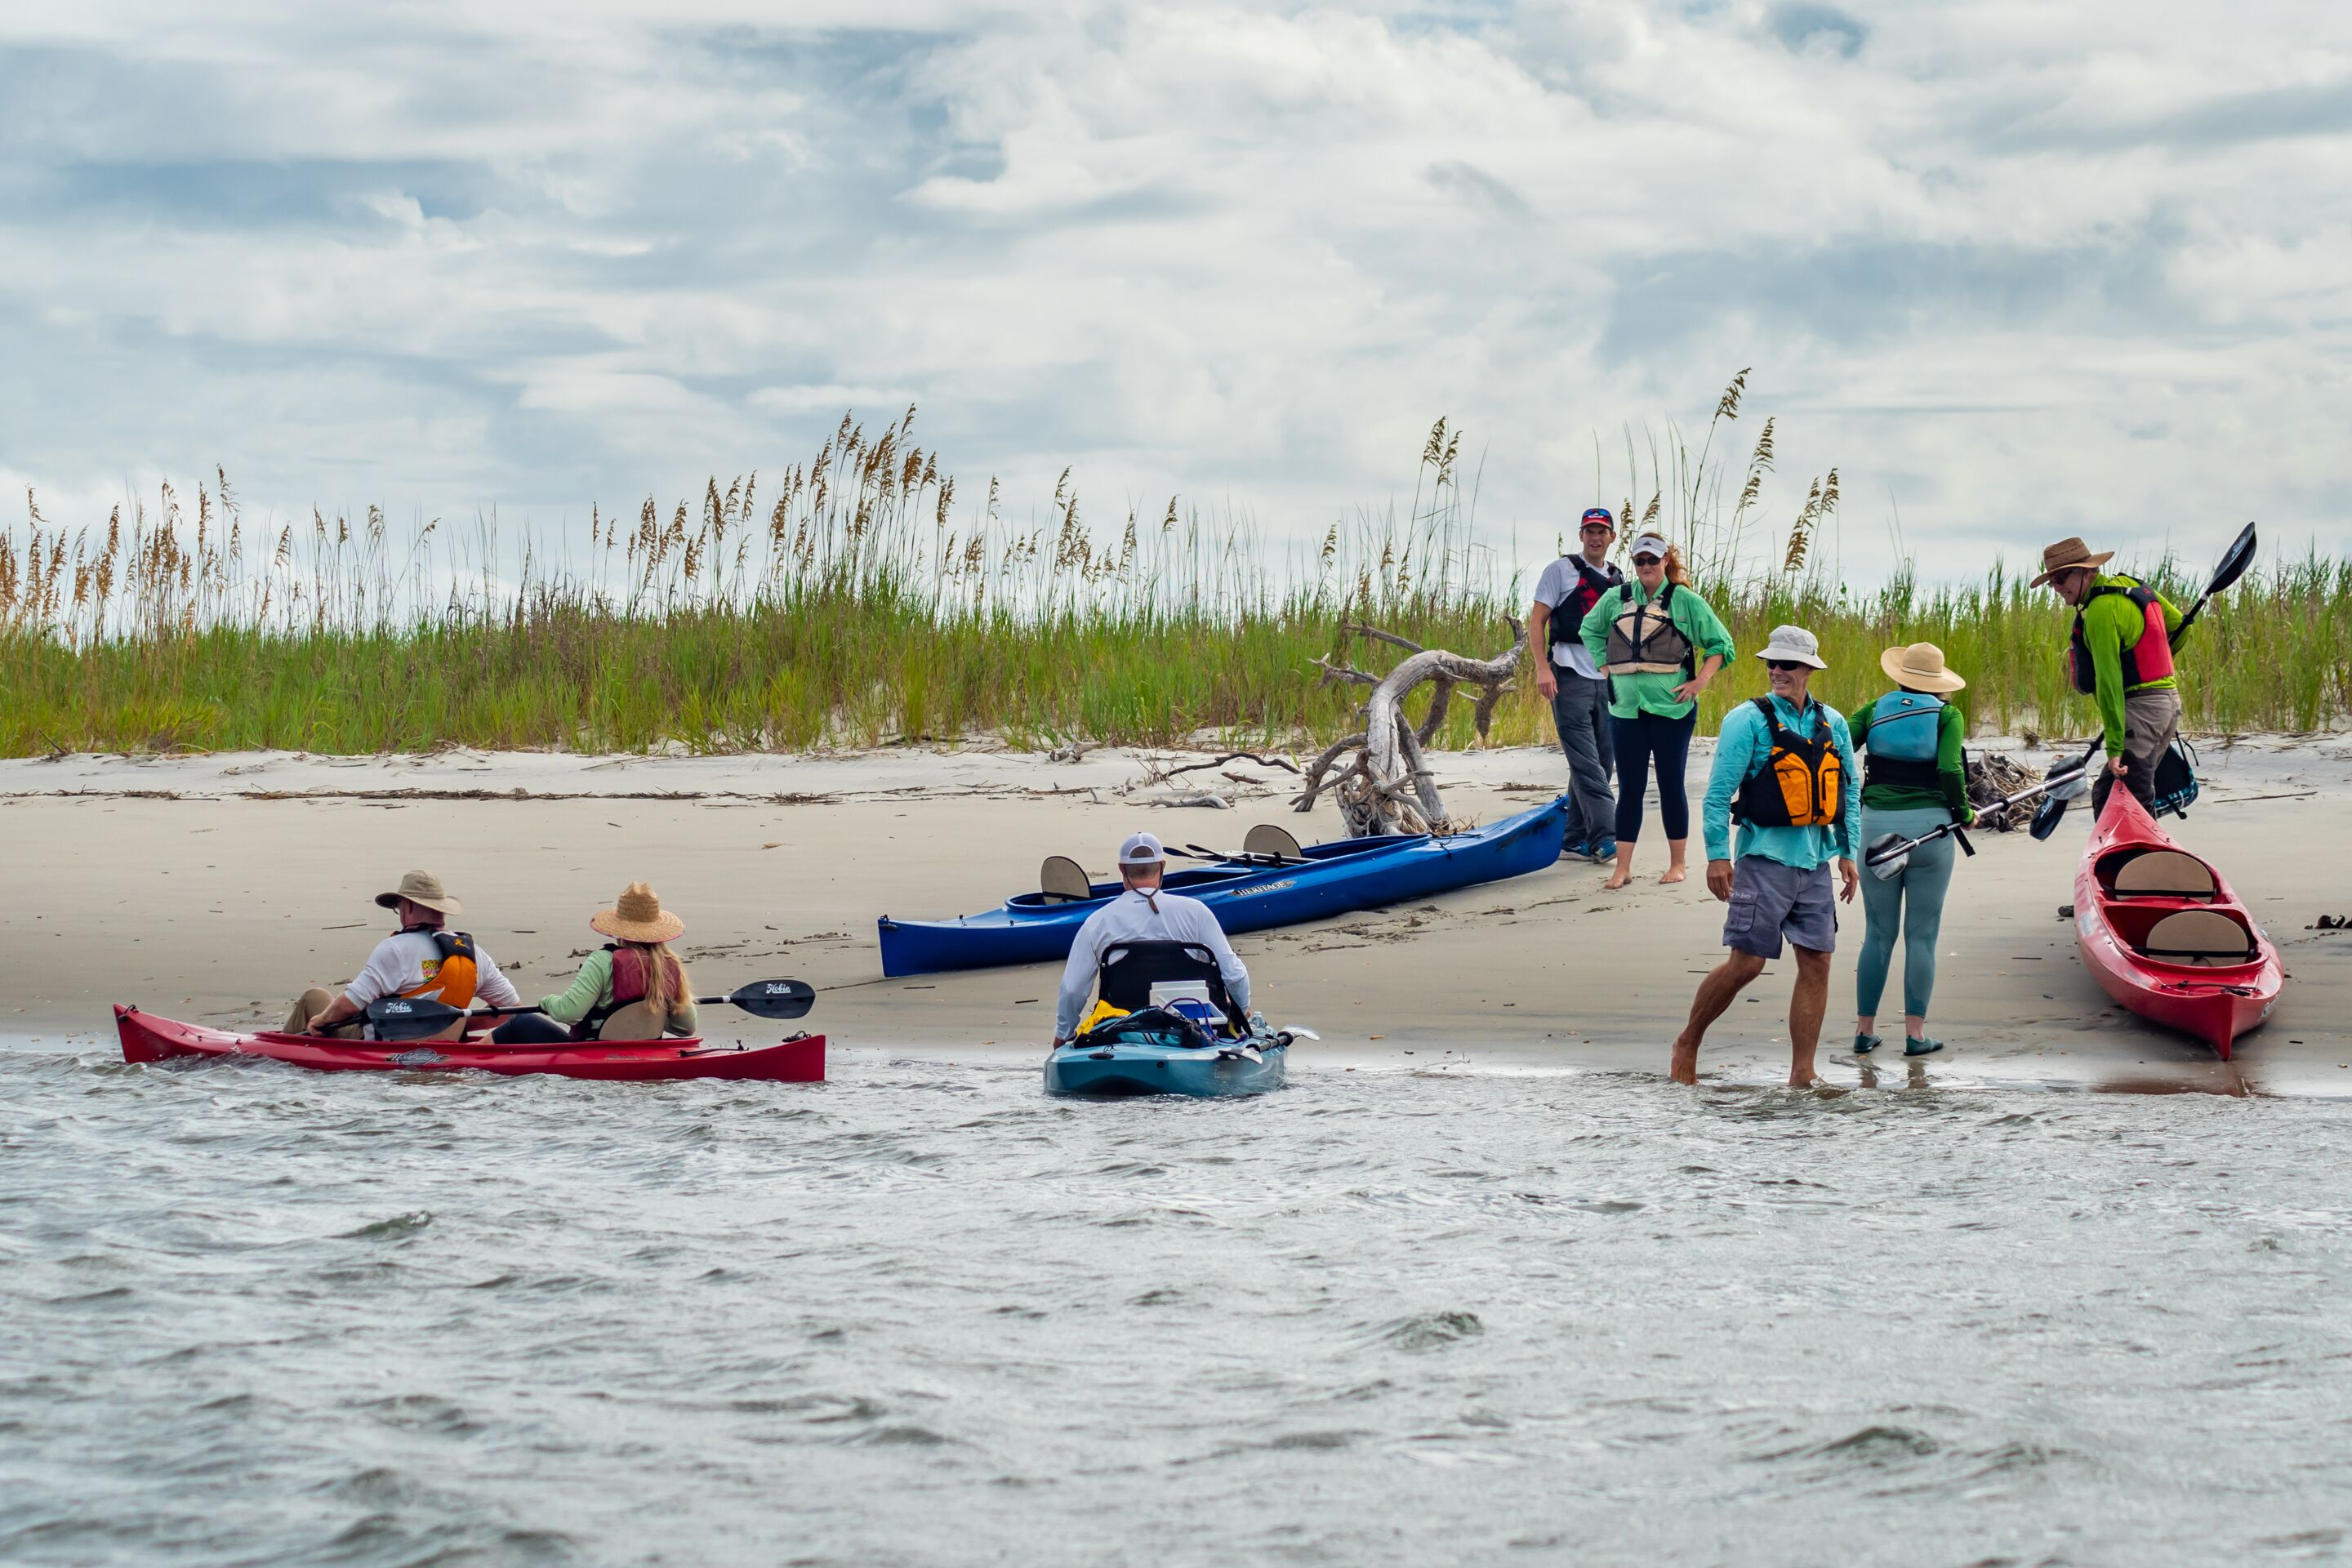 Reserve and Surf the Earth lead a naturalist-guided tour through of North Inlet estuary. The trip includes all equipment and instruction in basic kayaking, a natural history overview, and educational and research highlights of the North Inlet ecosystem.